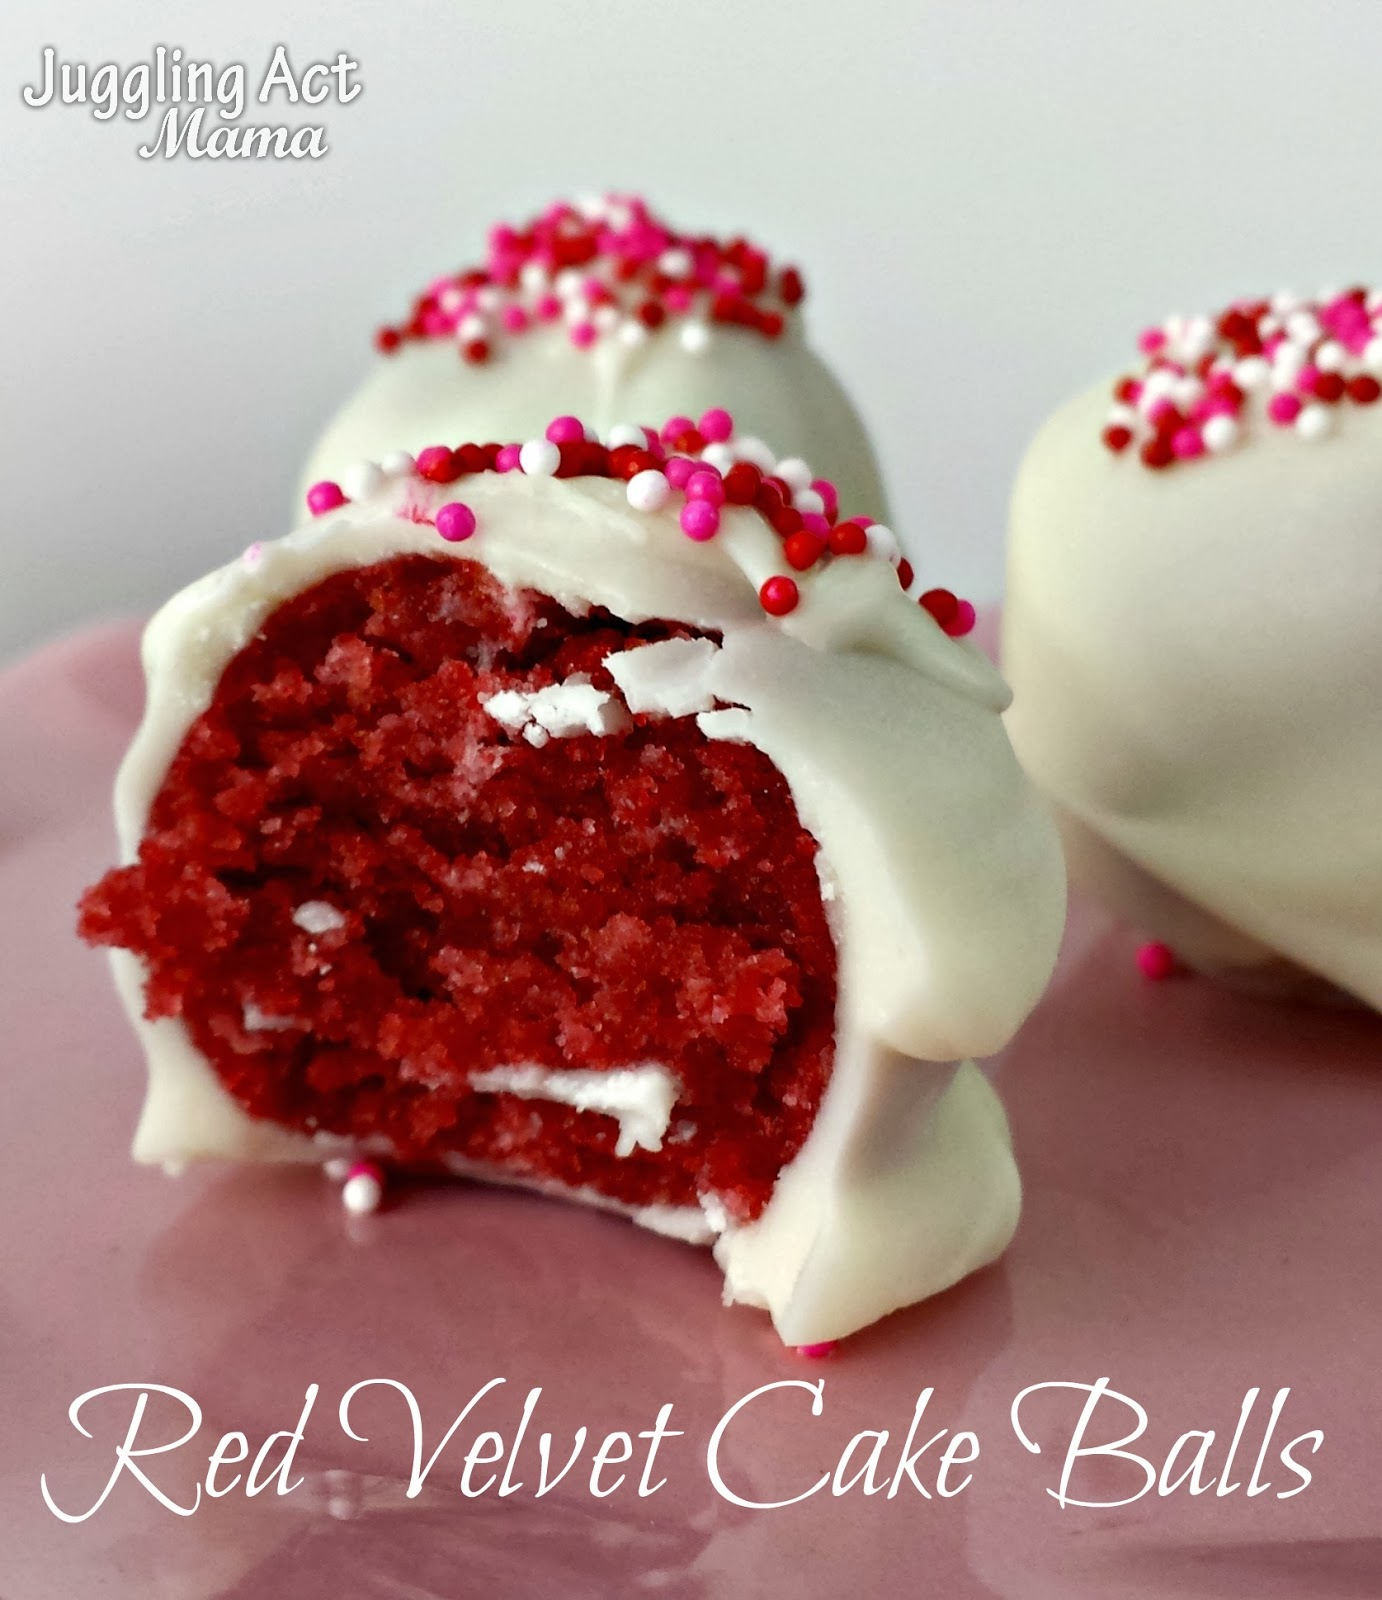 A Red Velvet Cake Ball Covered With White Chocolate Sits On Pink Plate